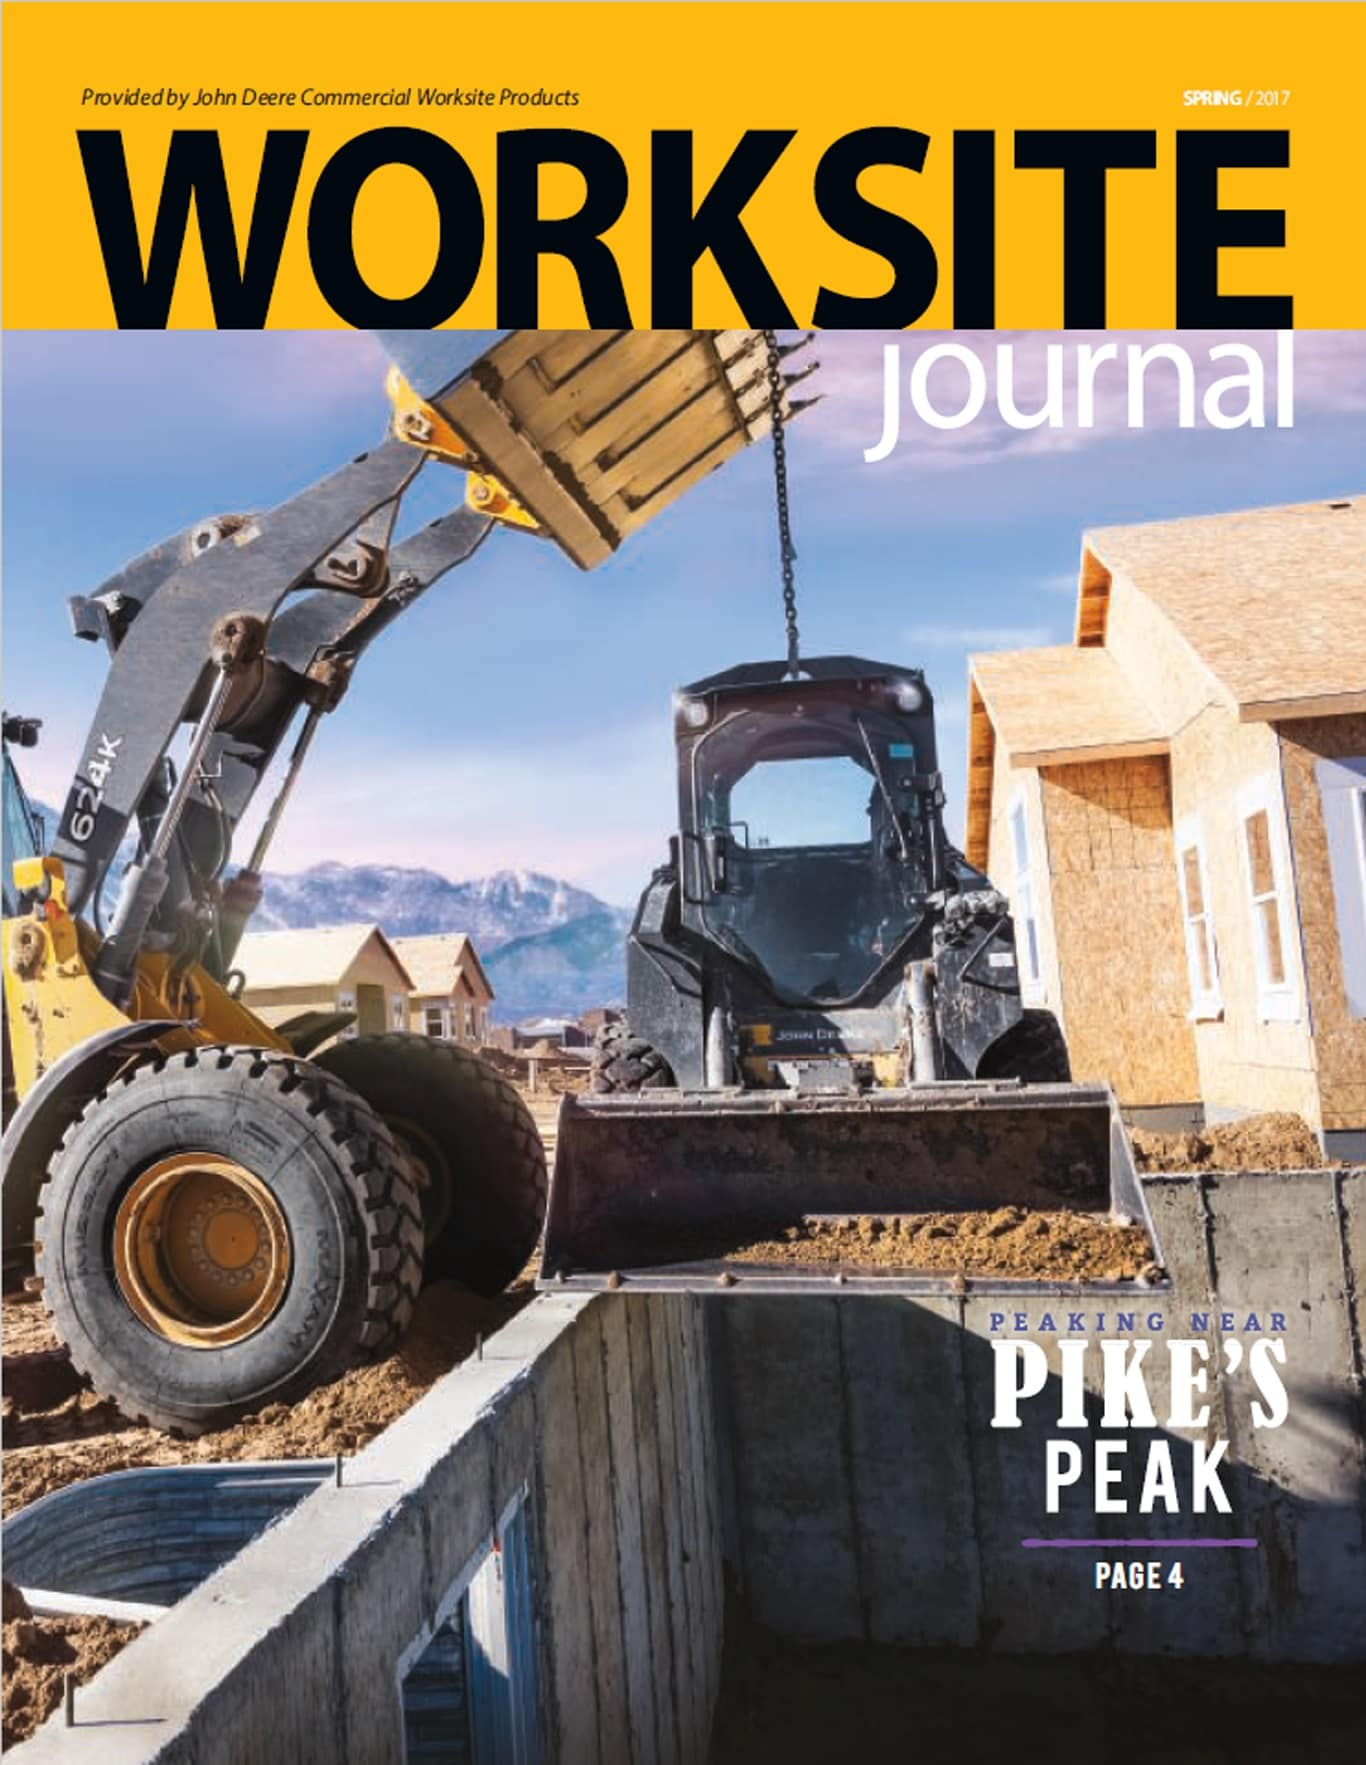 Worksite Journal